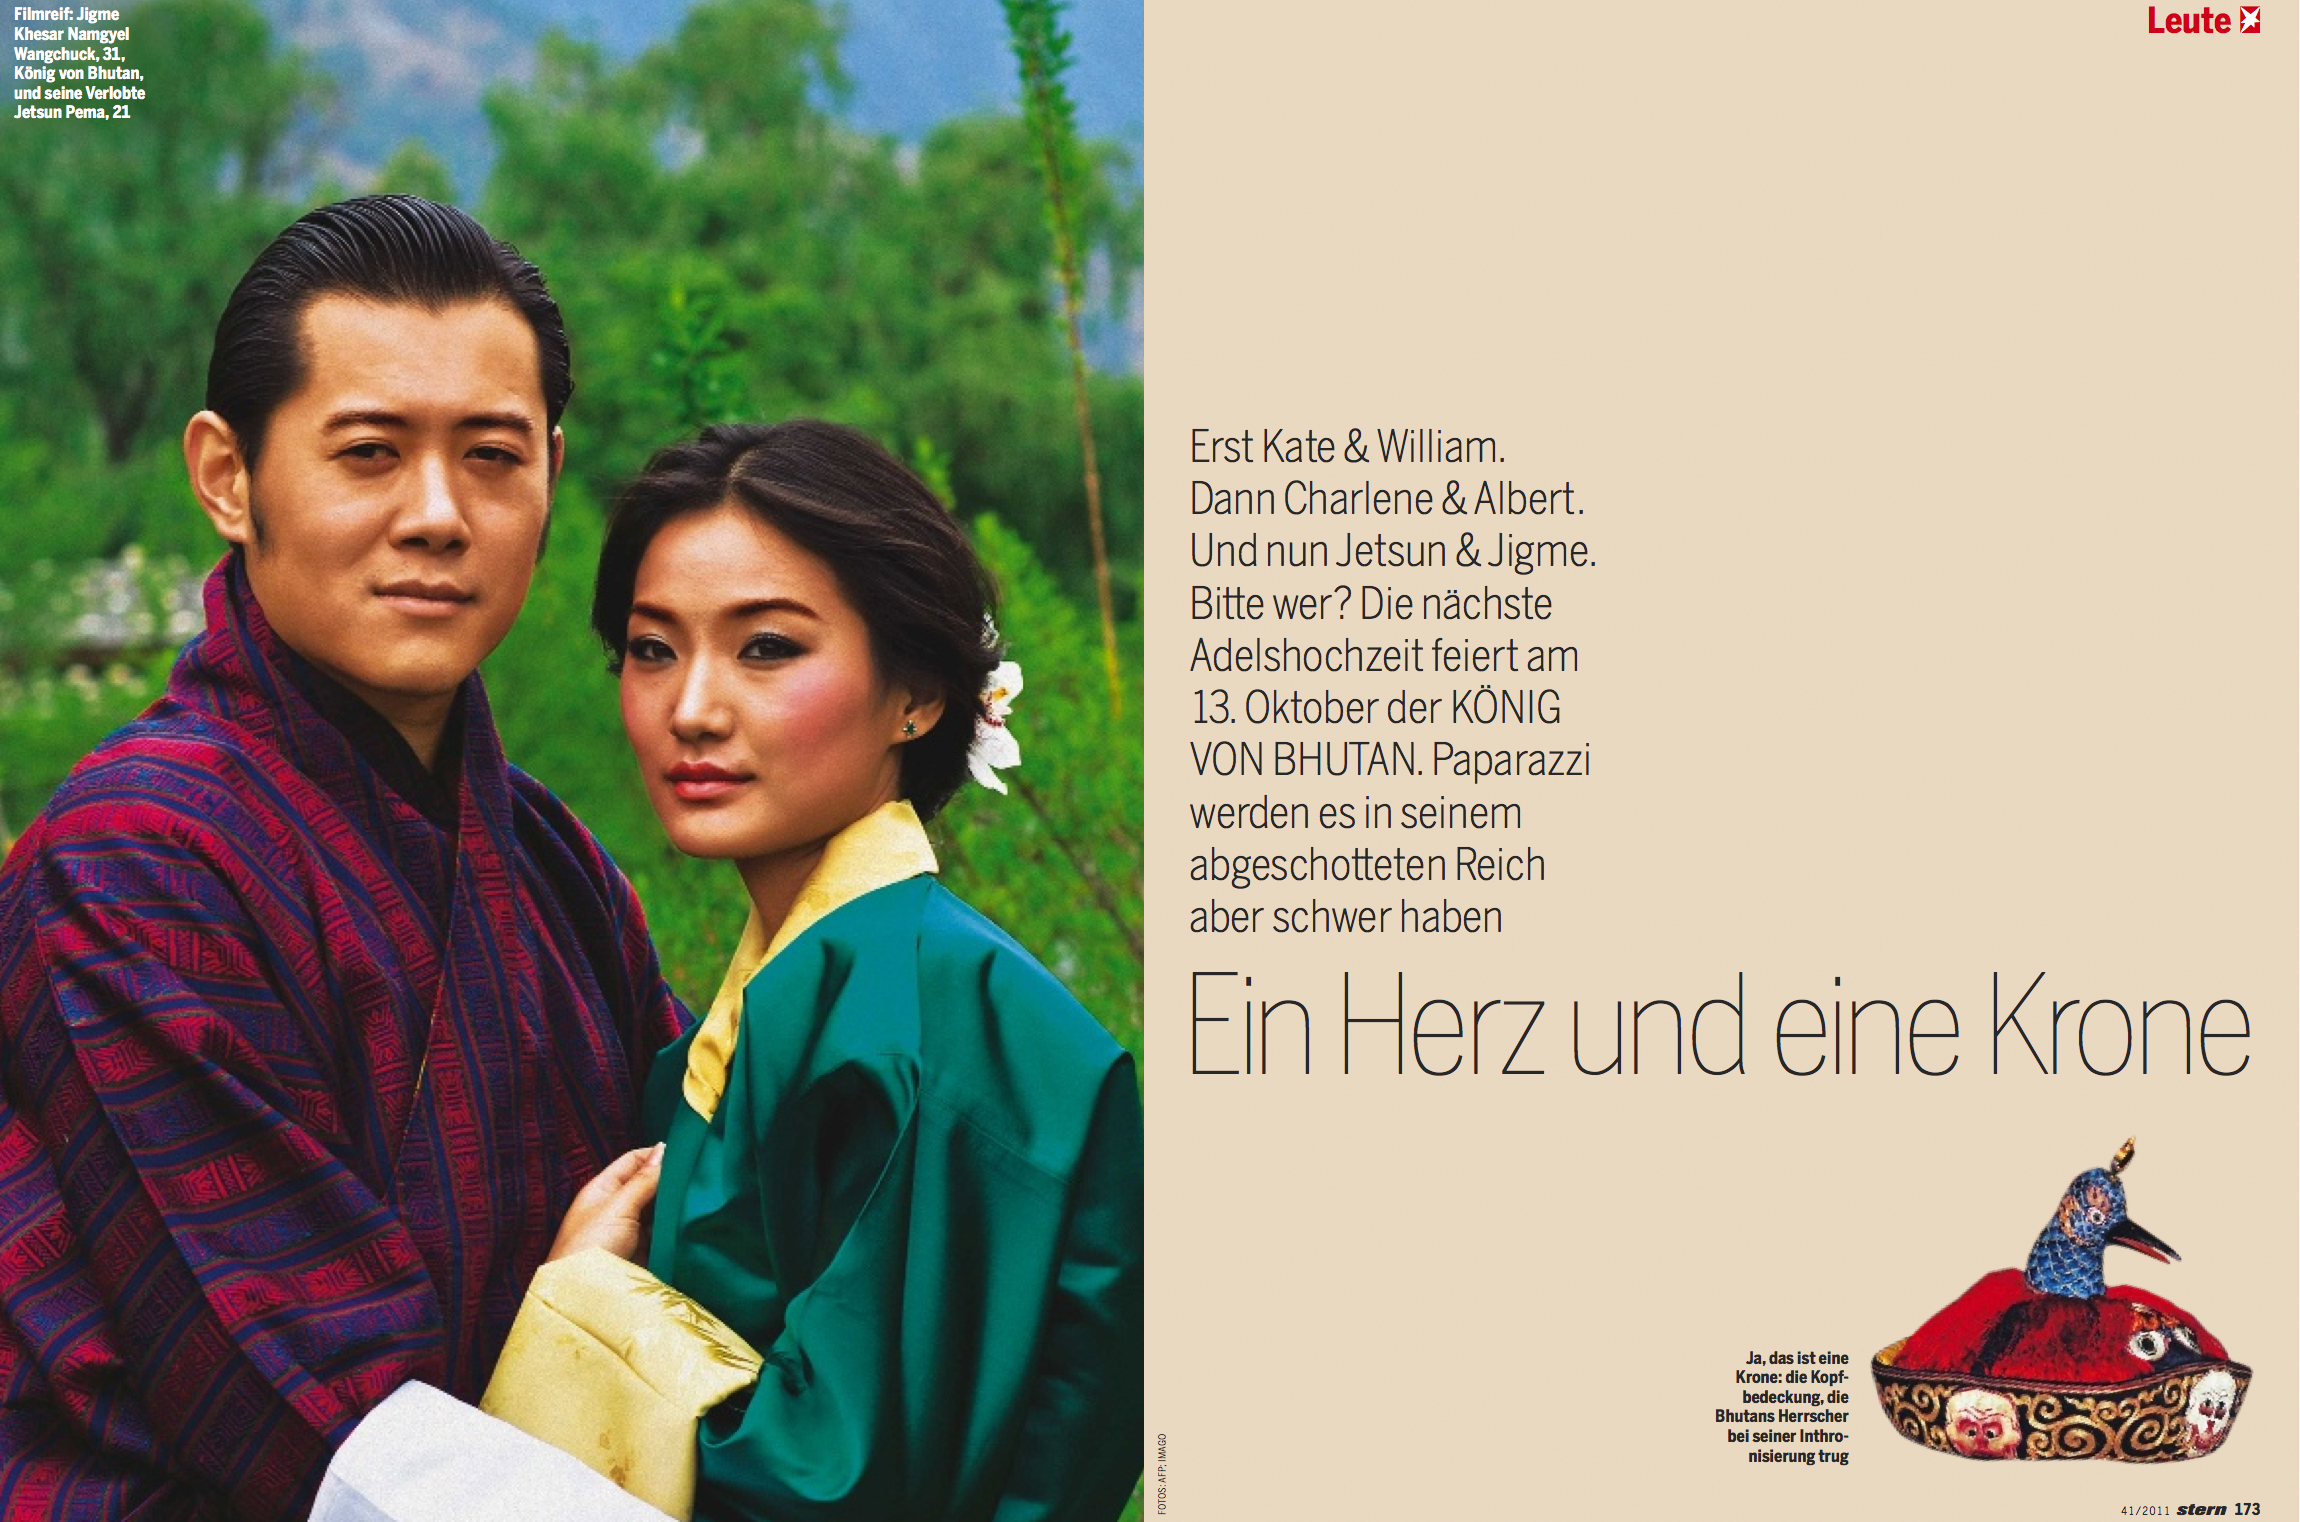 """Heart and crown"", stern 41/2011 First Kate and Williams, then Charlene and Albert. And now Jetsun and Jigme, pardon, who? The next noble marriage will be celebrated on October 13 in Bhutan. But for paparazzi's it will be hard to shoot some exclusive photos this time. Photo: AFP"